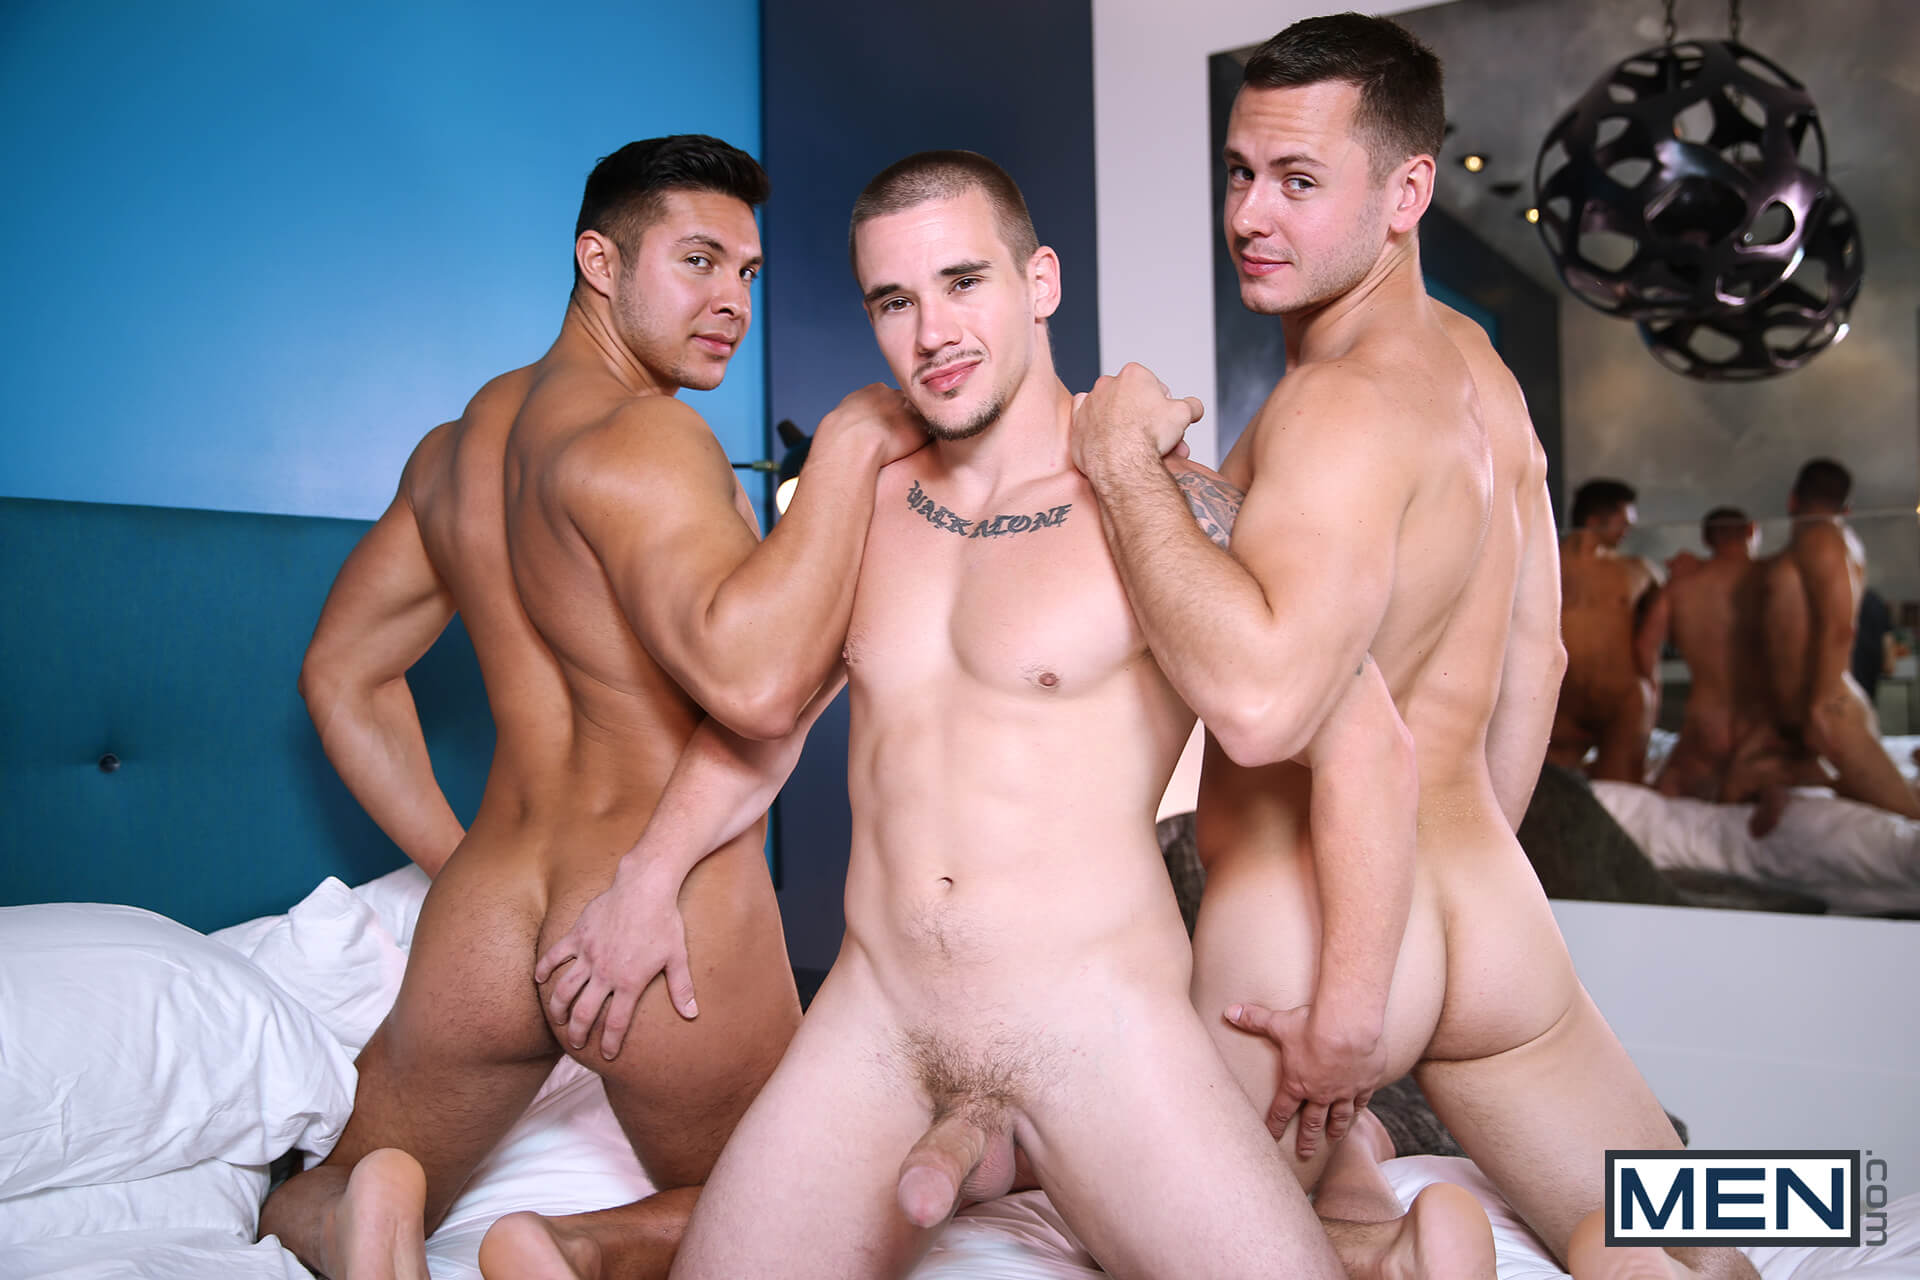 men str8 to gay freaky friday part 2 adam bryant brenner bolton seth santoro gay porn blog image 9